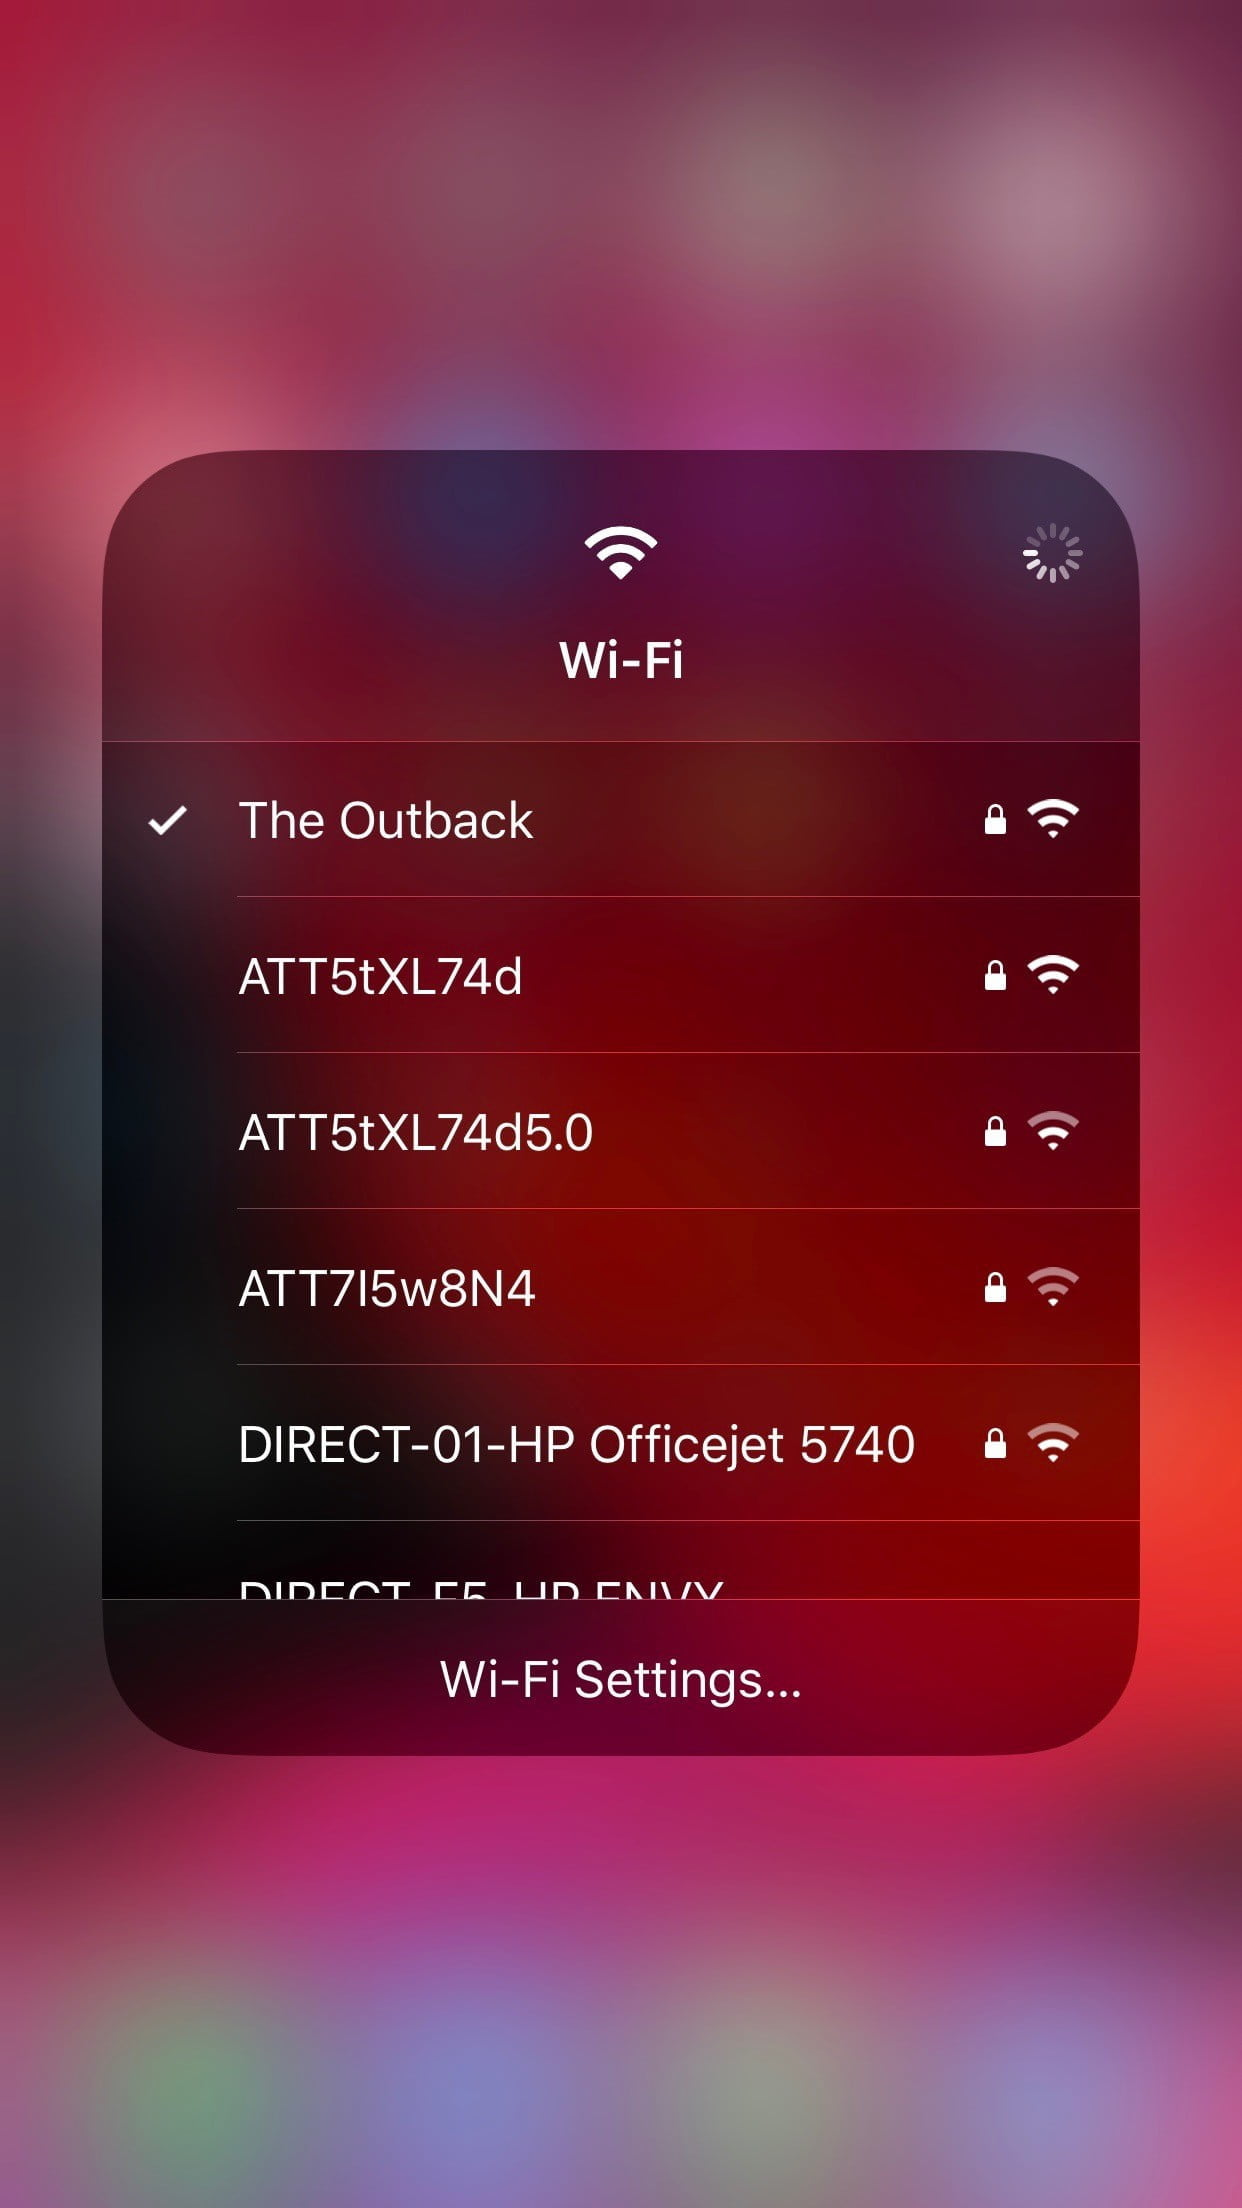 How to Use iOS 13's Wi-Fi and Bluetooth Controls From